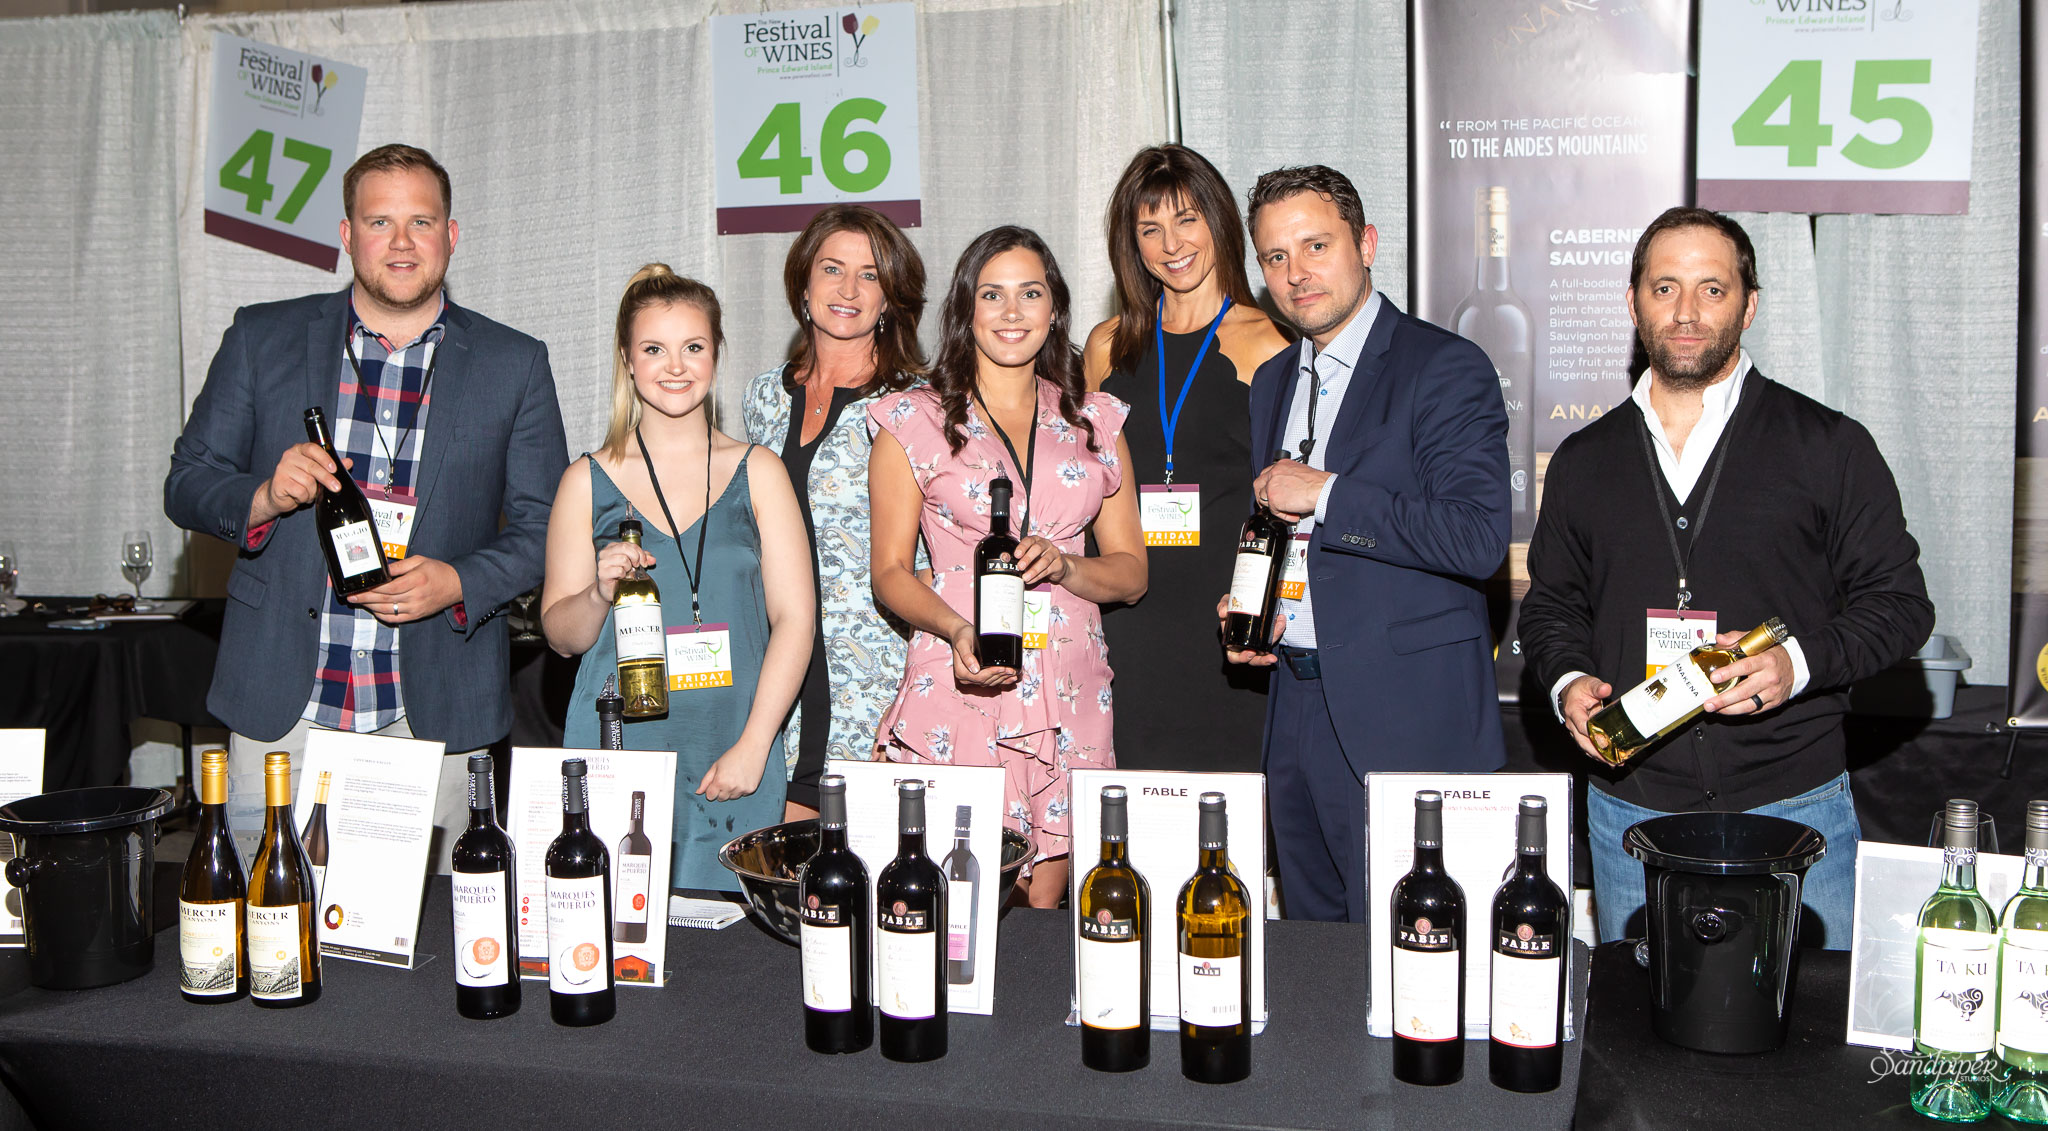 Group of Happy People with Wine at the Festival of Wines 2018